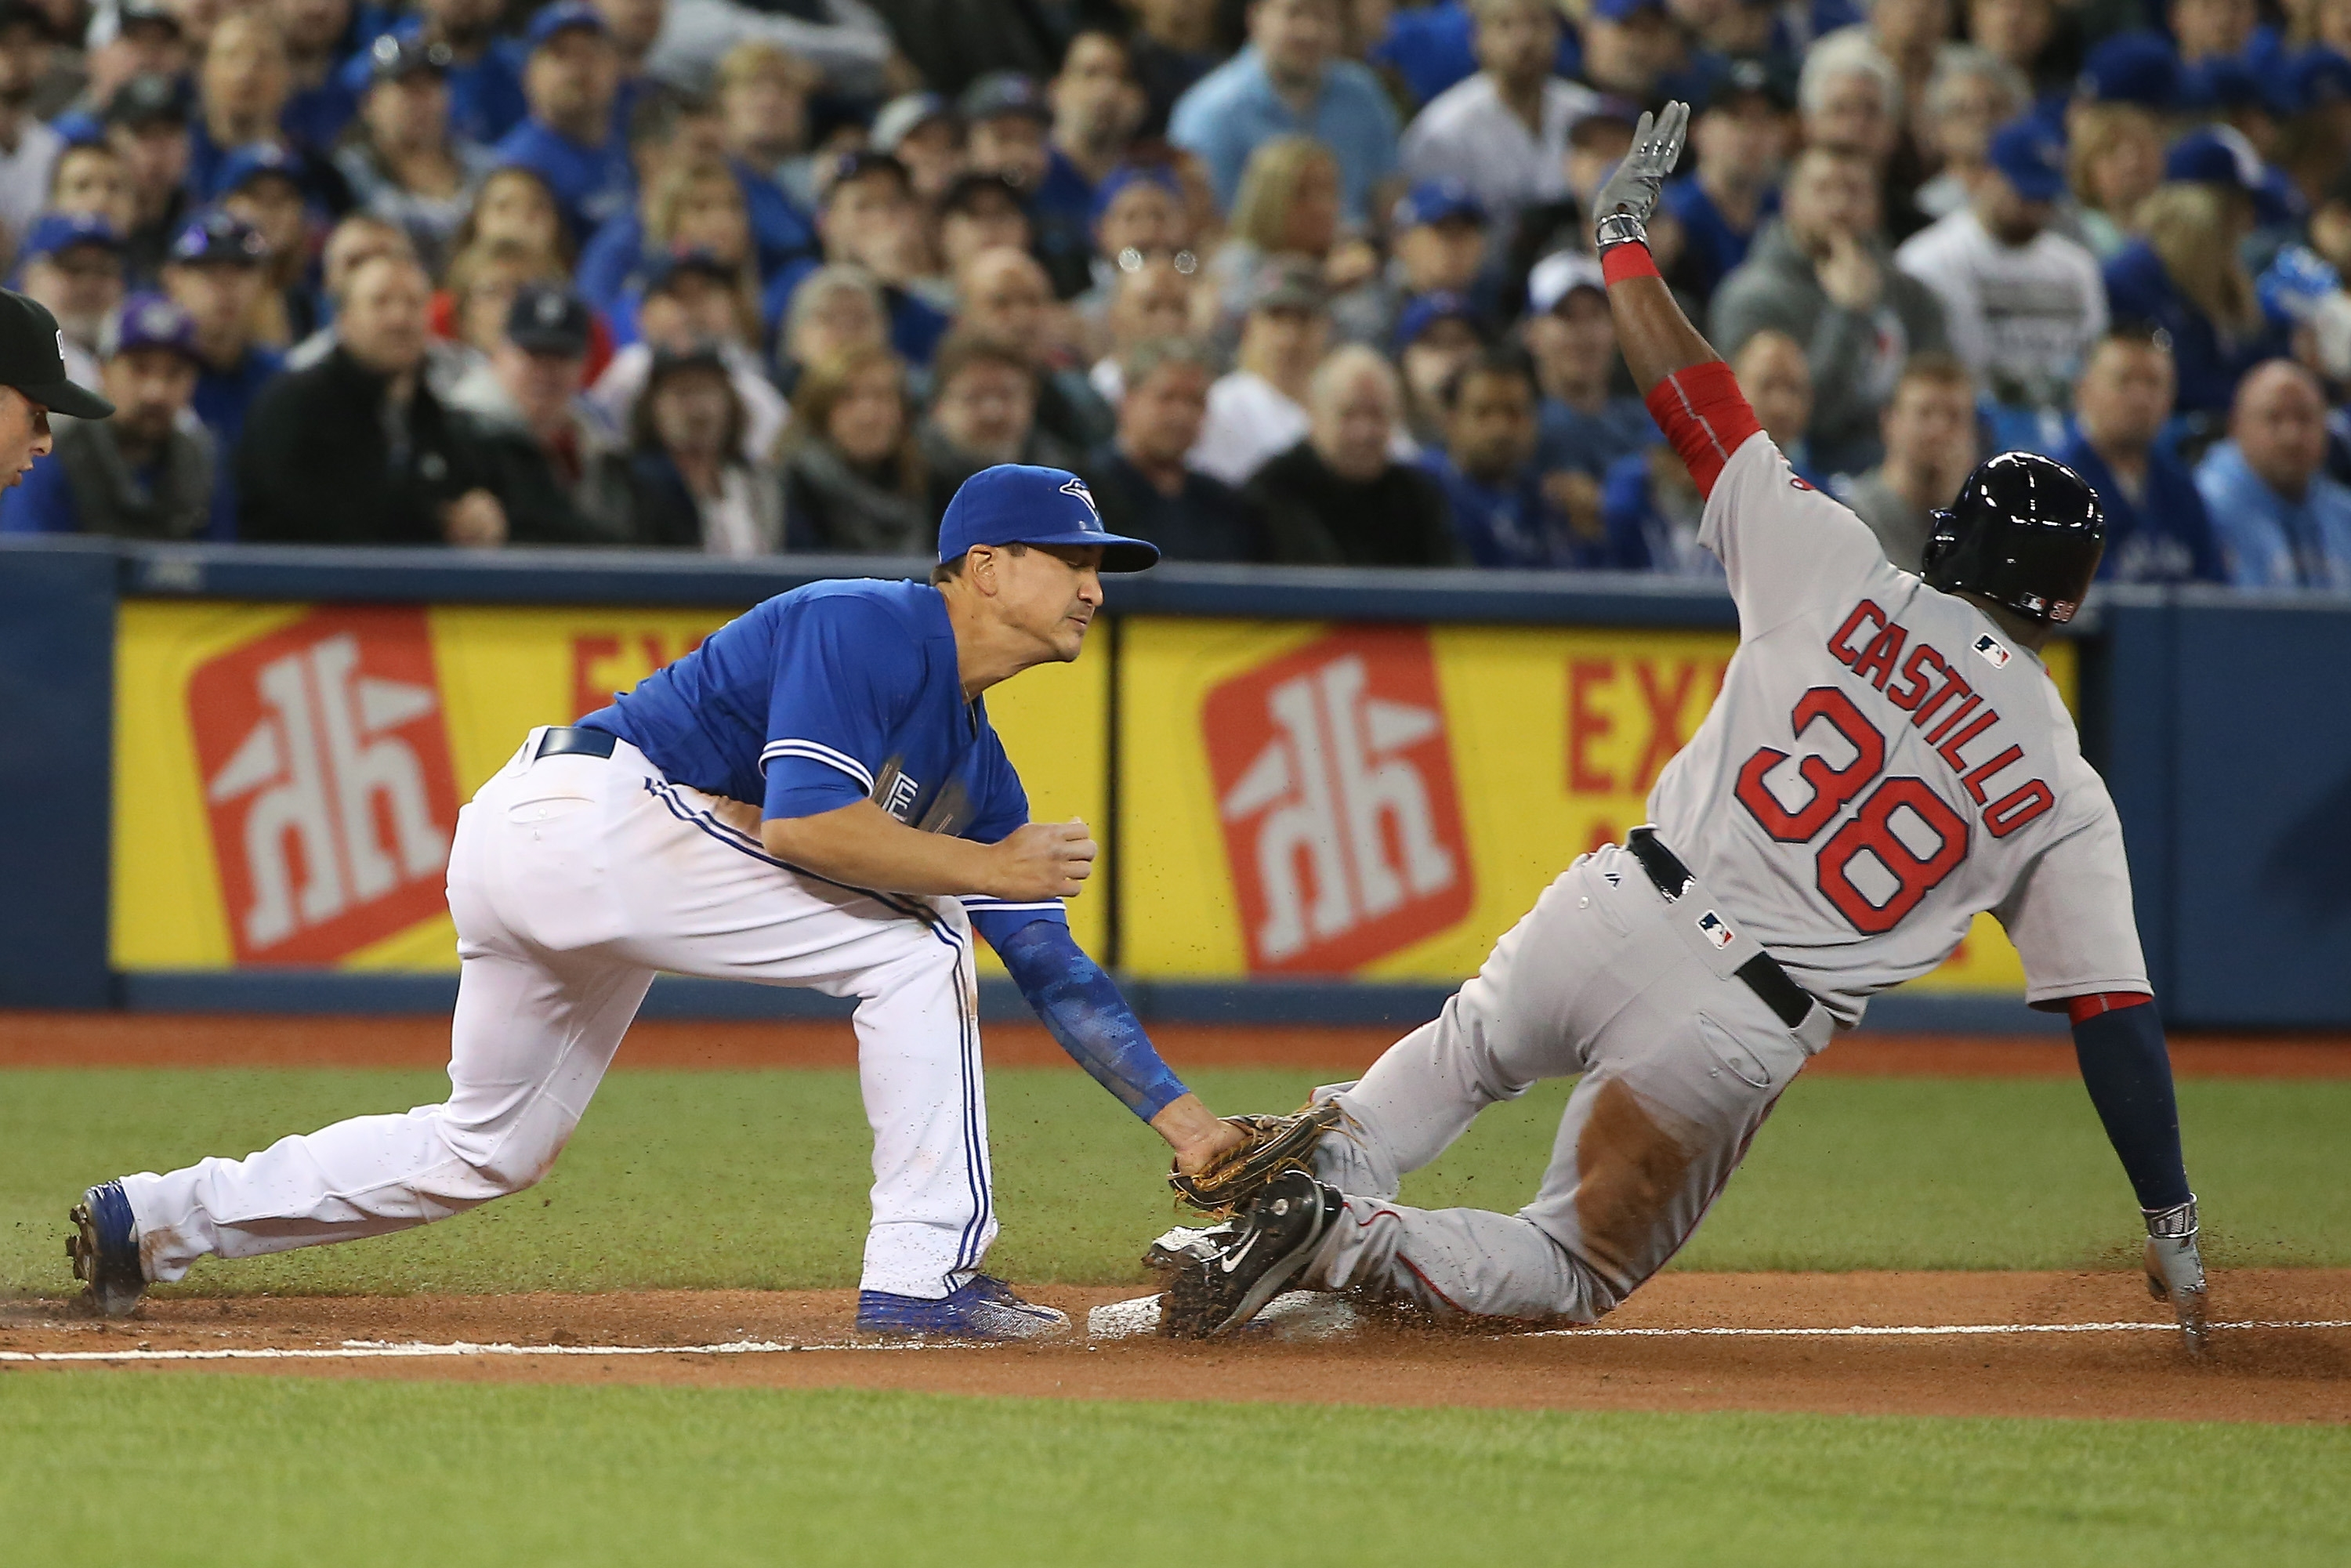 Rusney Castillo had two hits in his first start of the season for the Red Sox as Boston manager John Farrell hit all the right buttons during his team's 8-4 triumph over Toronto at Rogers Centre.